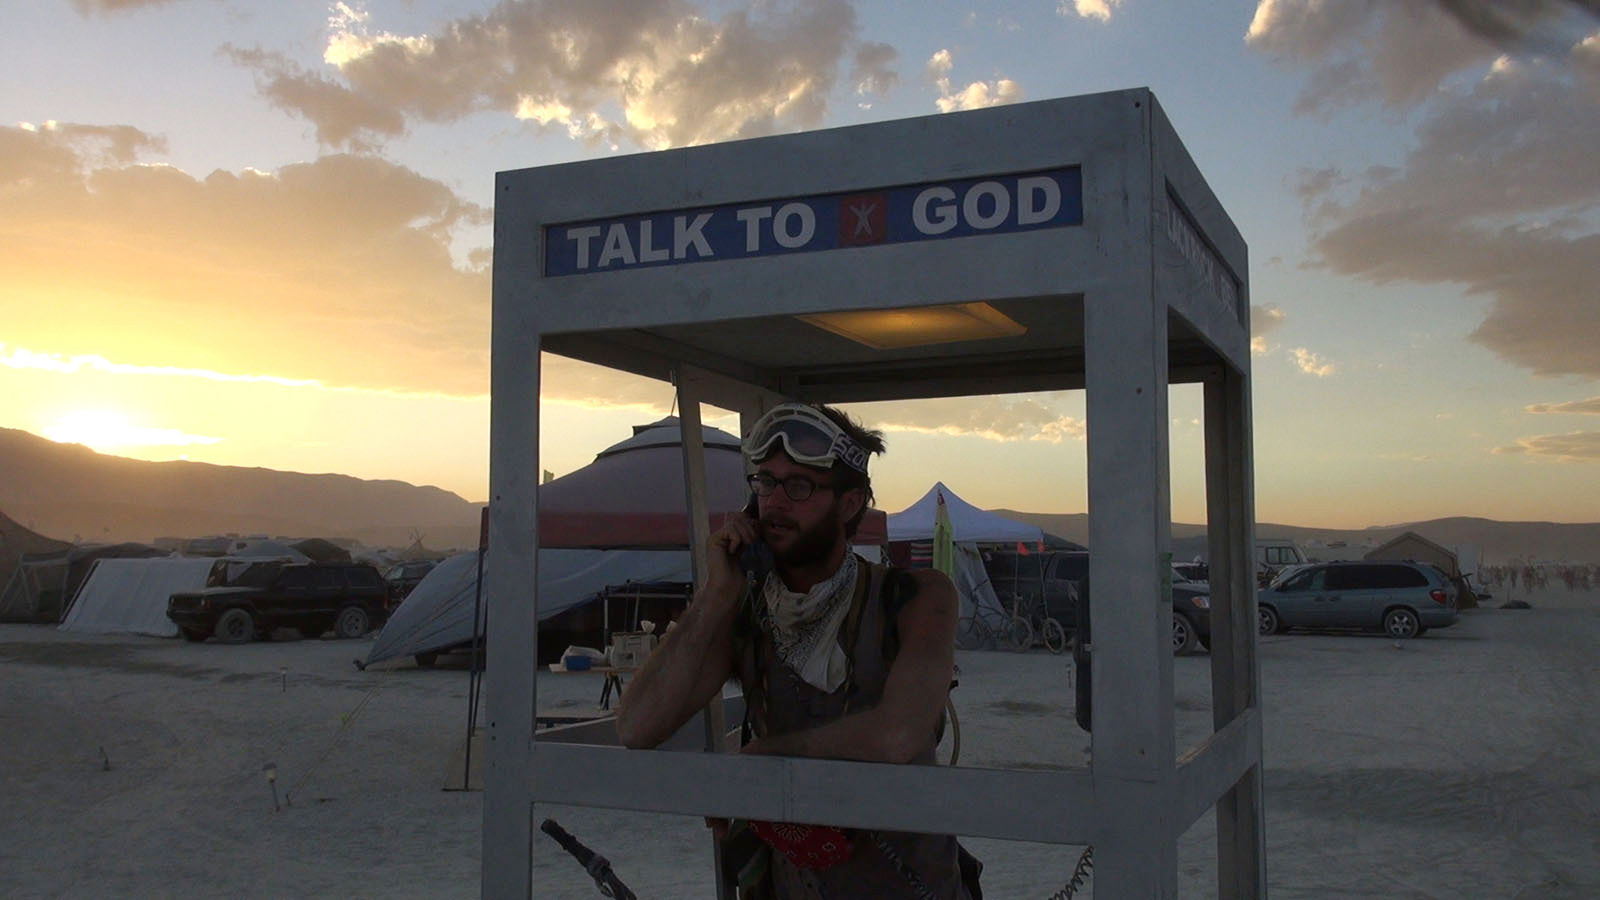 A LOCAL CALL TO GOD